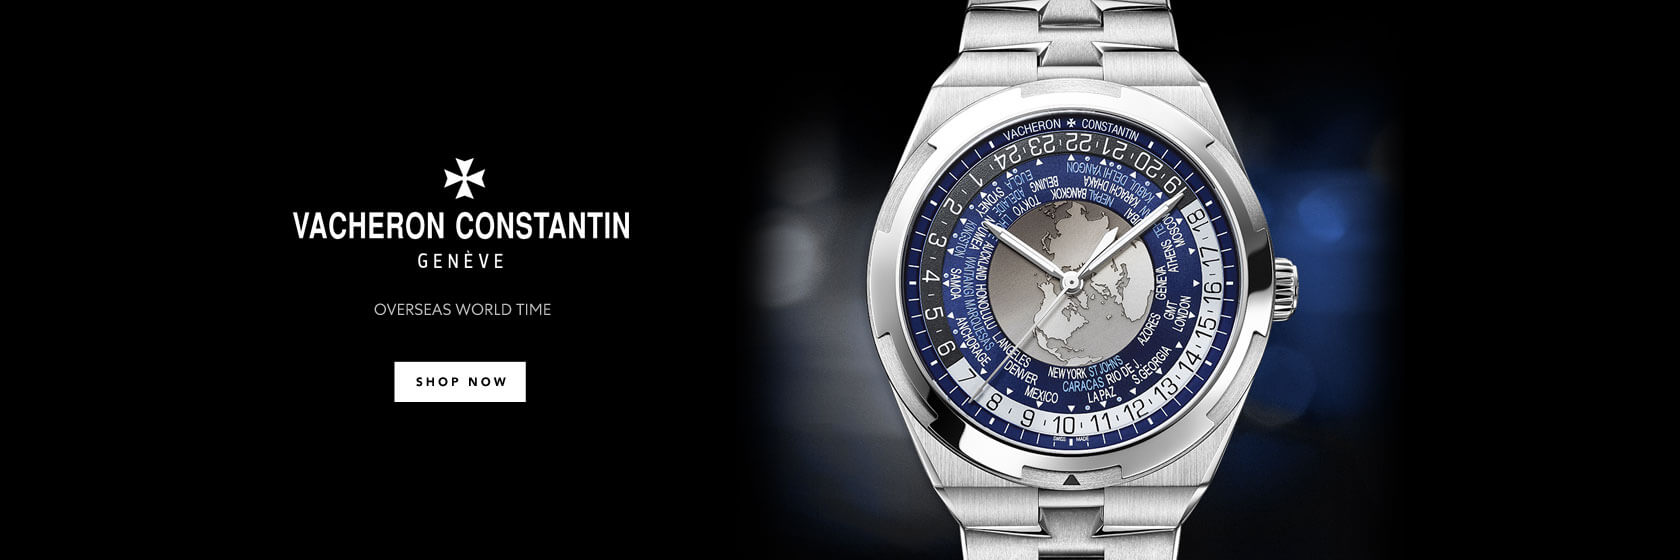 Shop Vacheron Connstantin